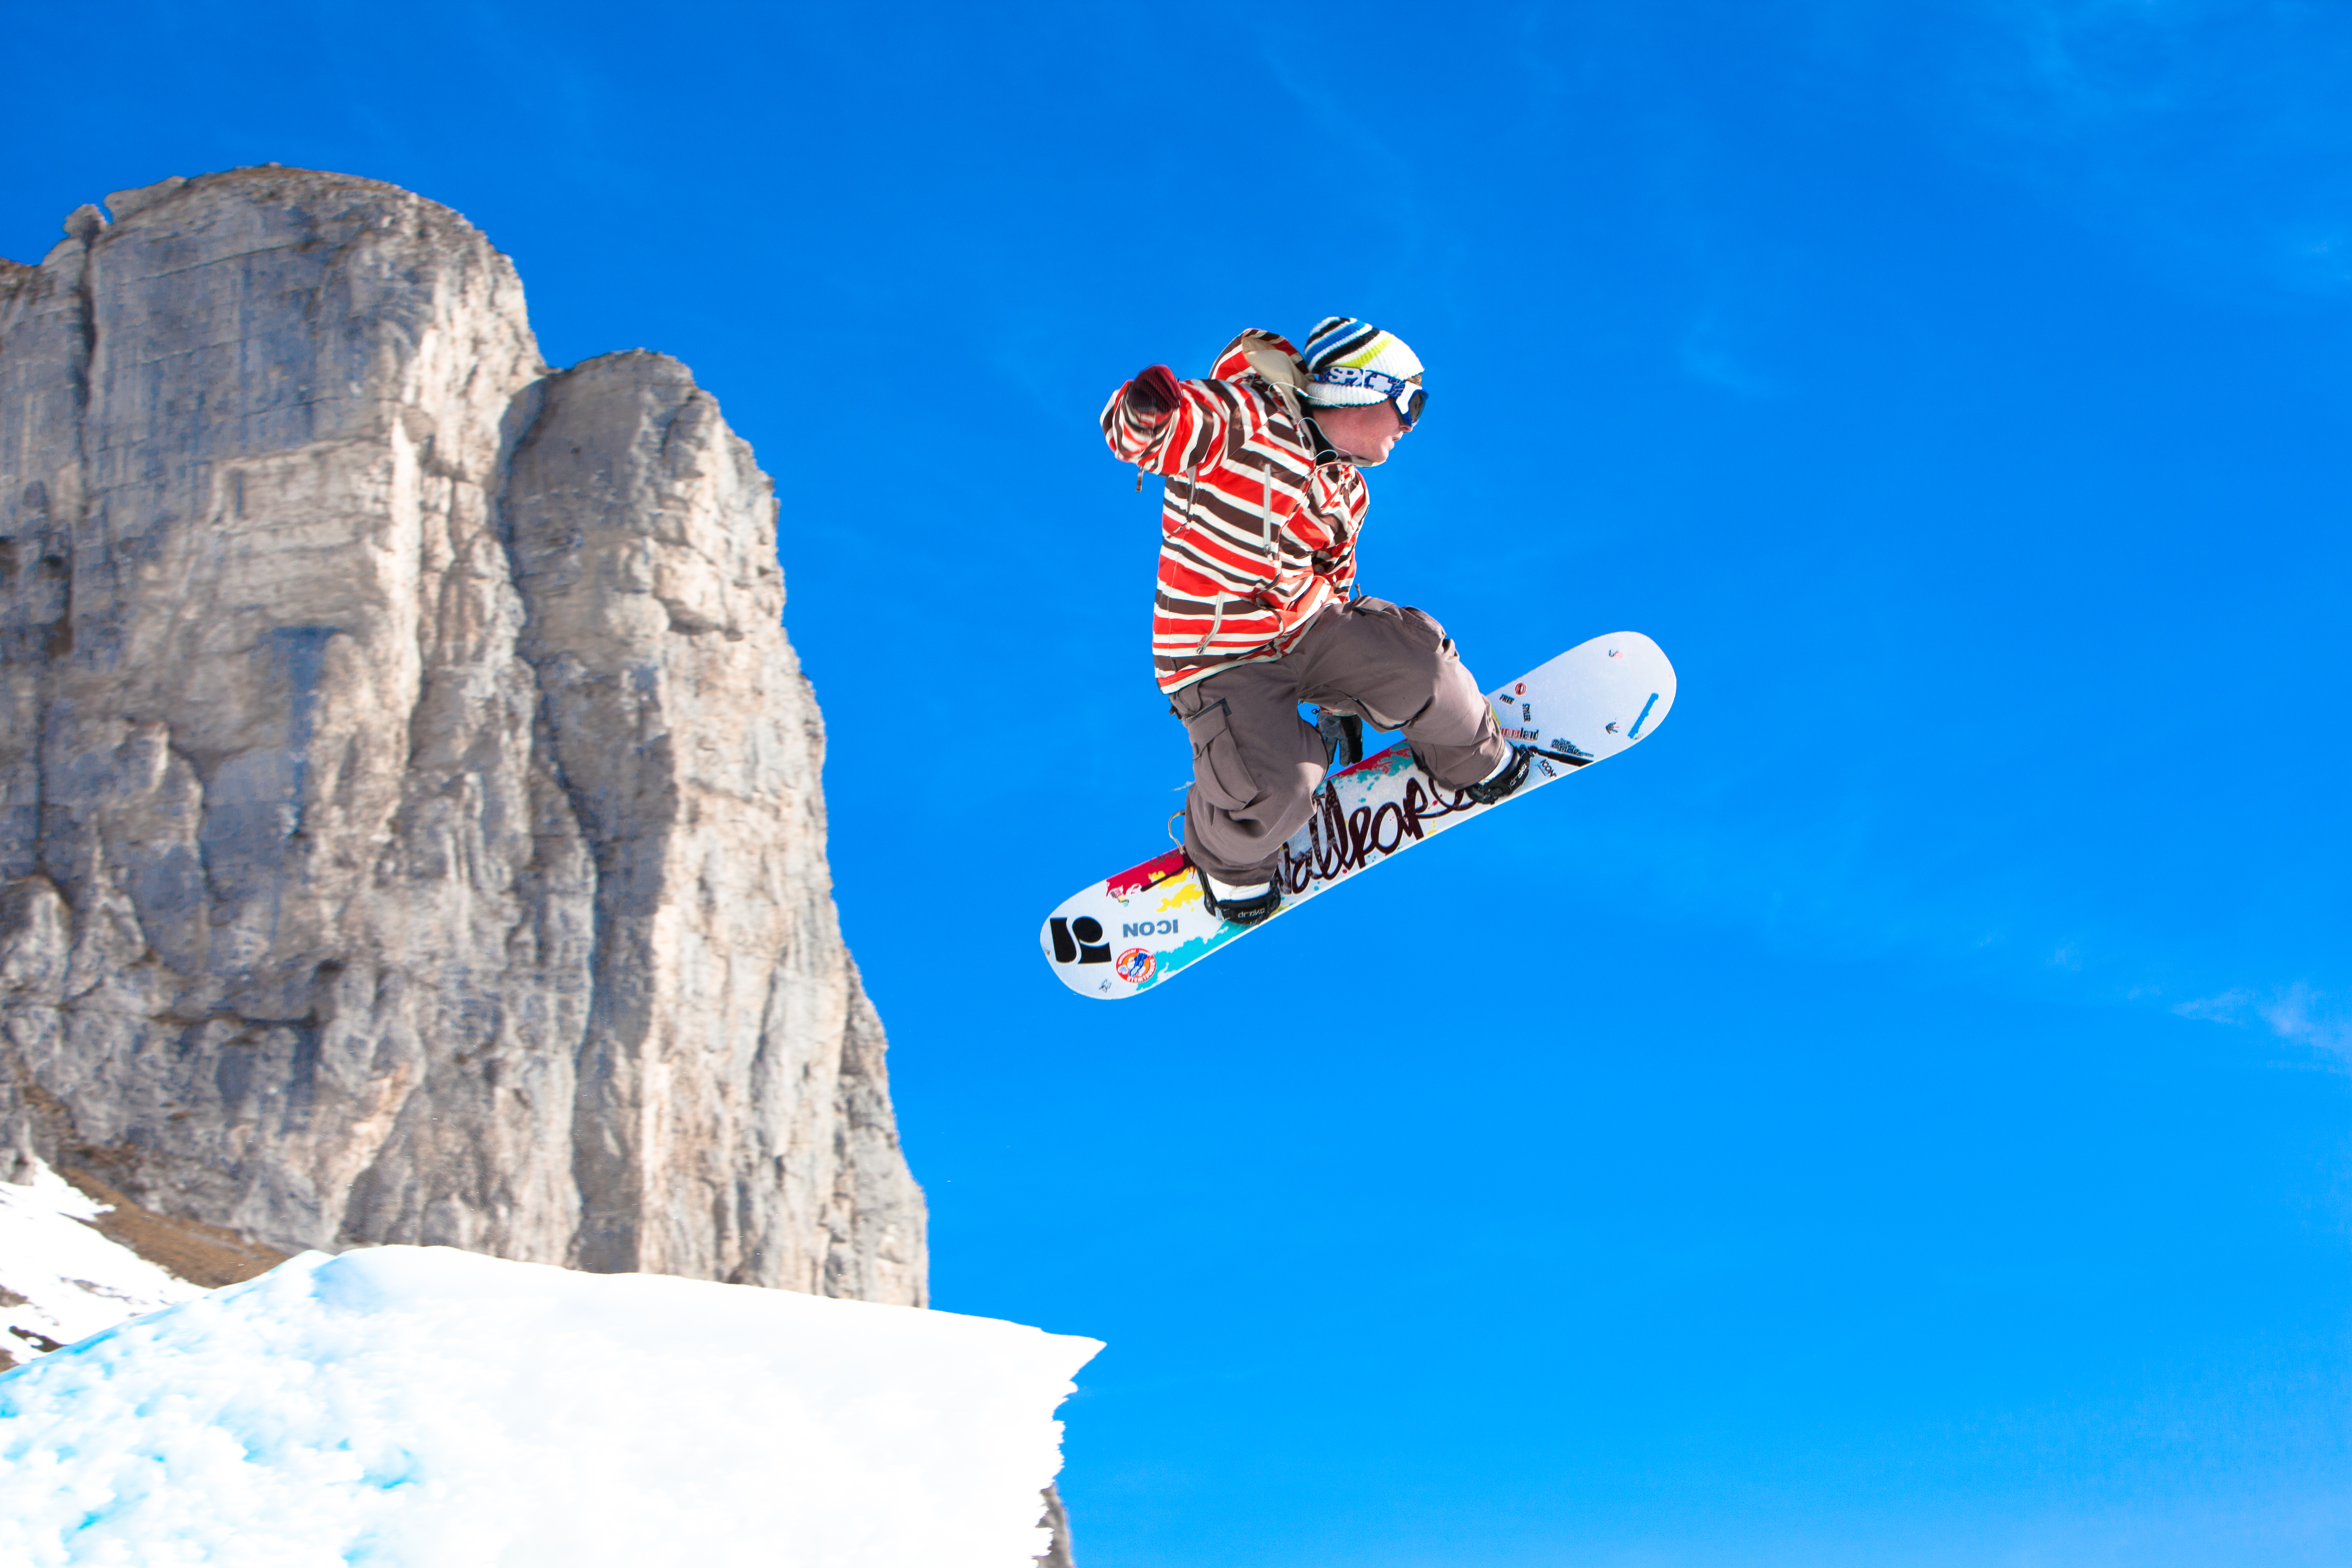 snowboard history Welcome to never summer industries - designers and manufacturers of the highest quality snowboards and wakeboards on the planet made in the usa.